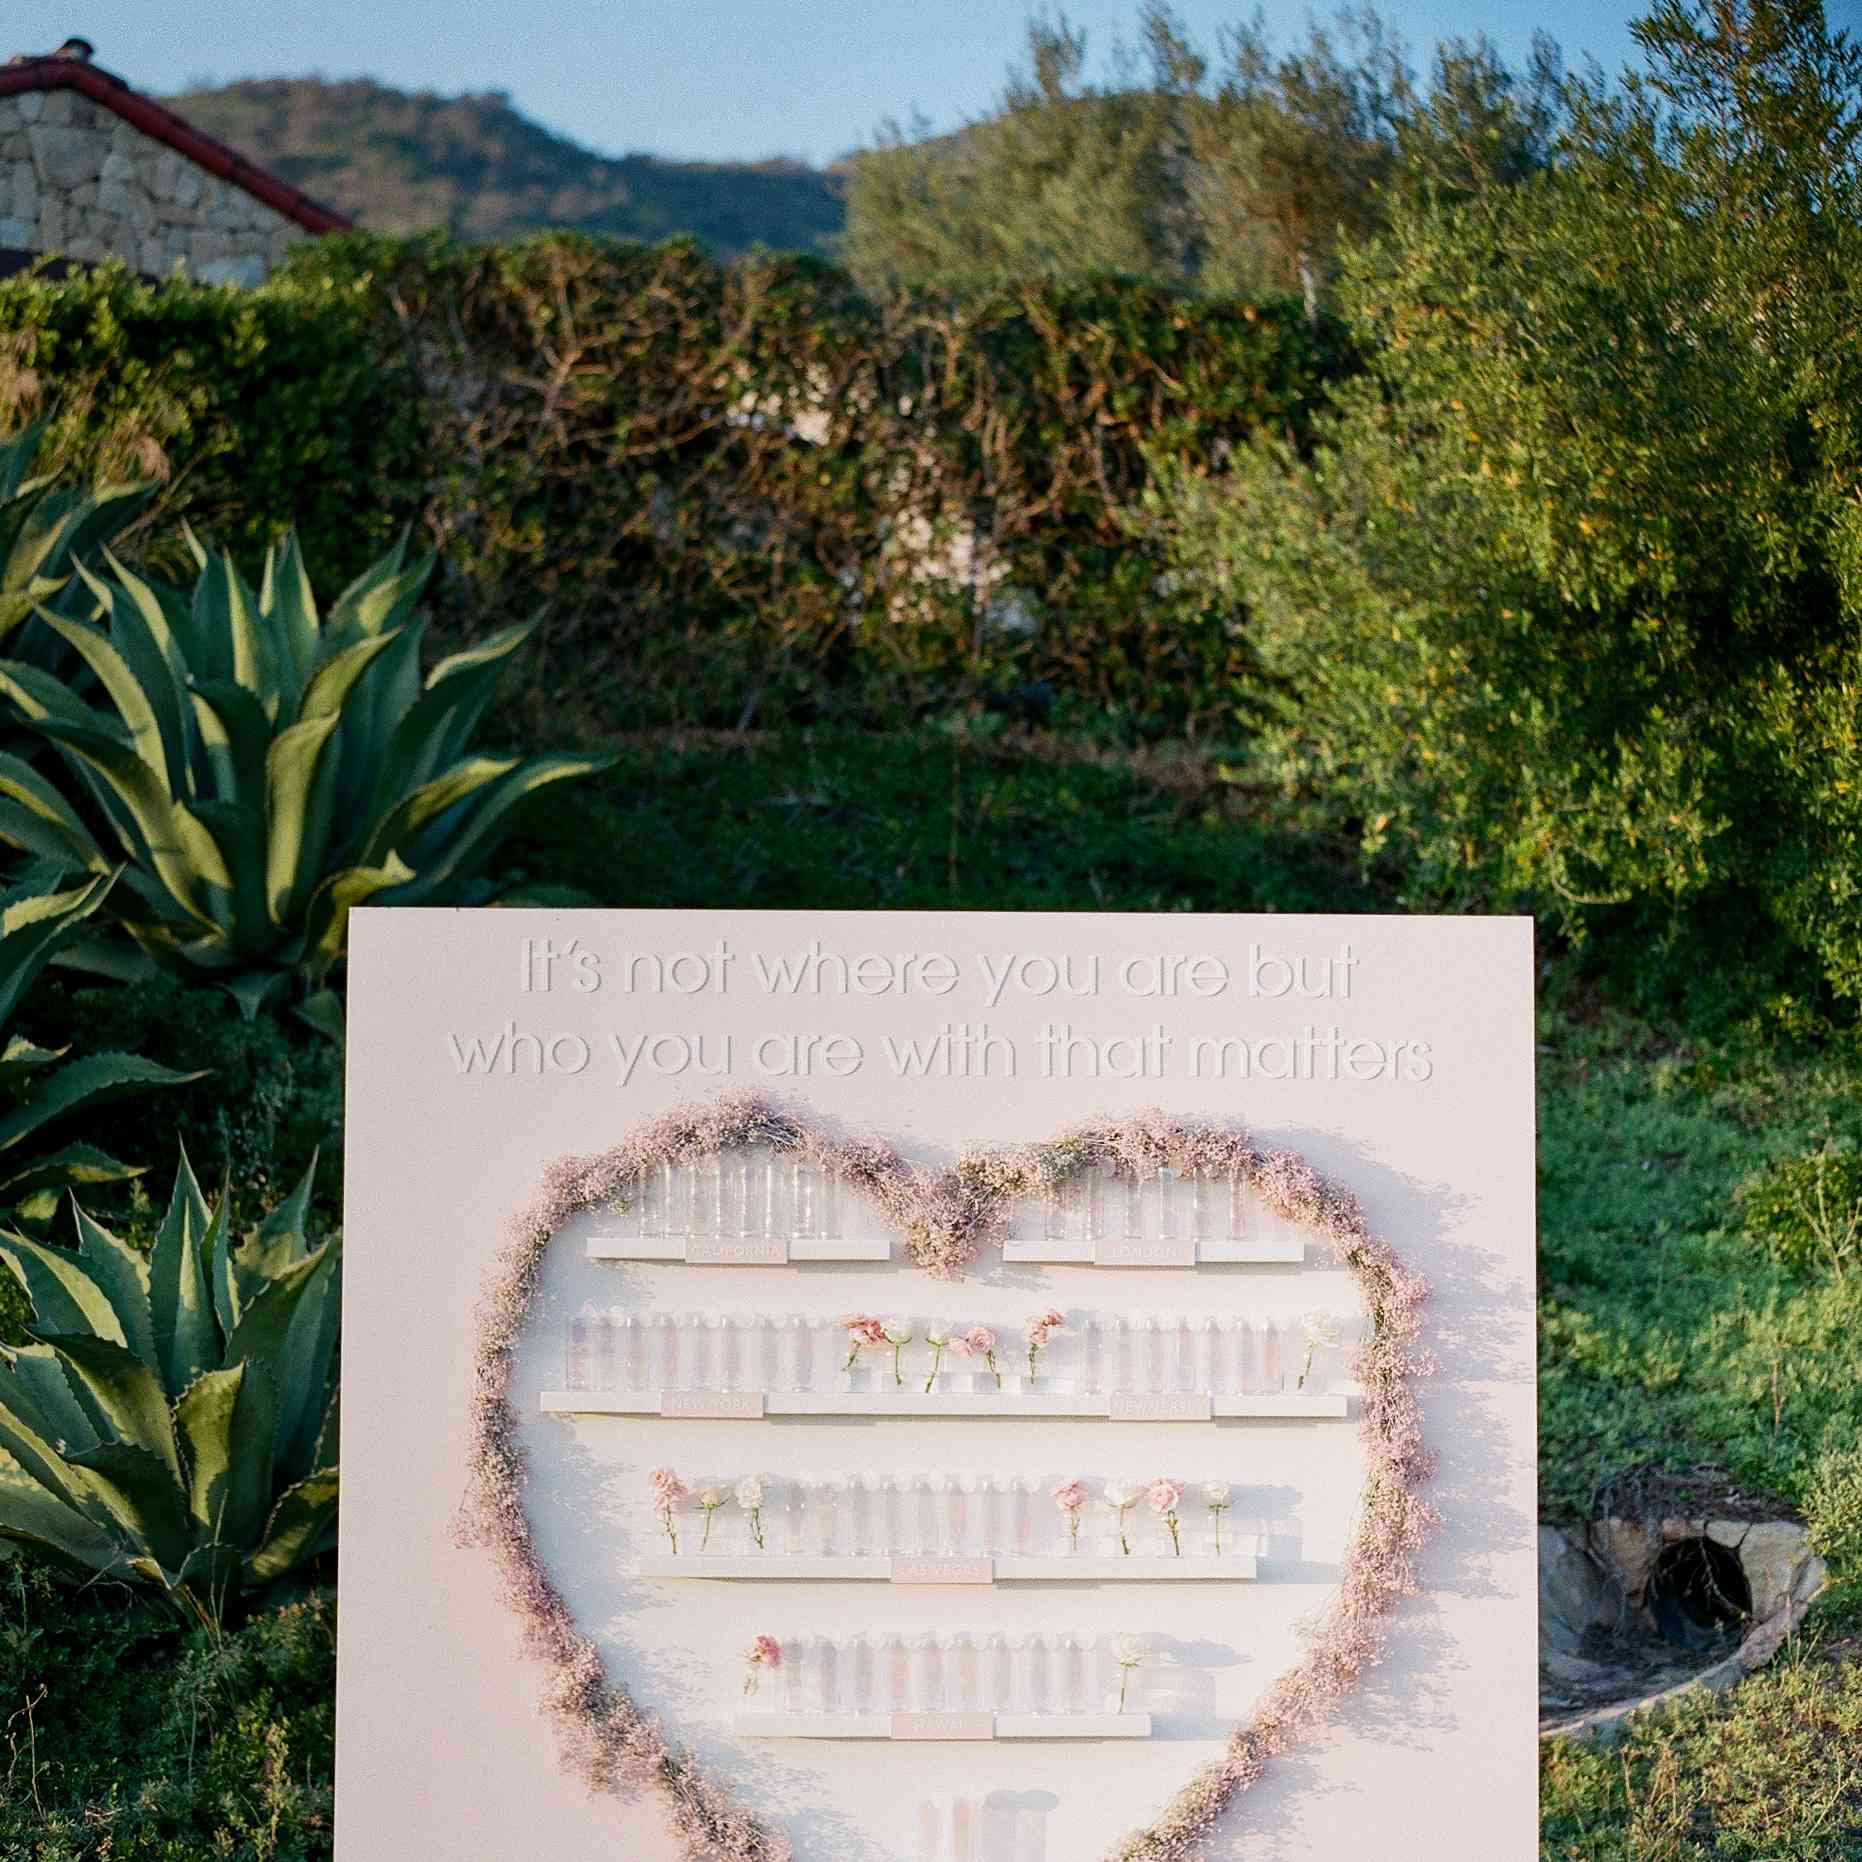 Escort card display with a flowers in the shape of a heart that says